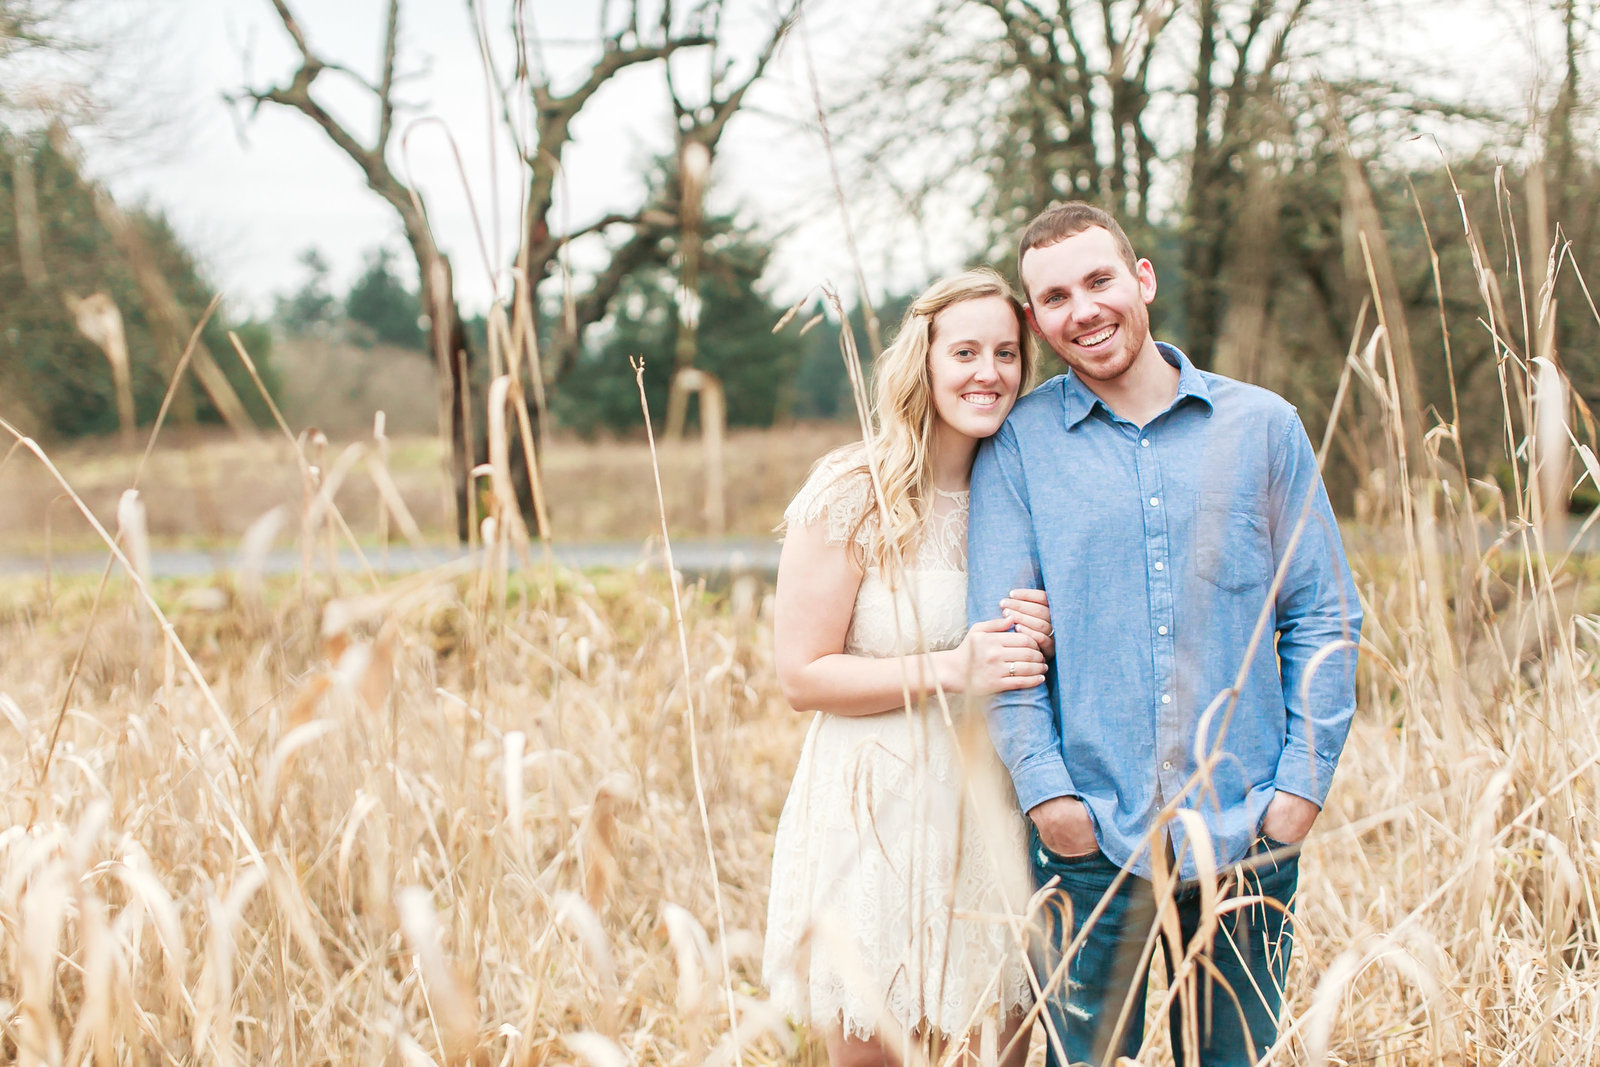 shelby-james-engagement-photos433338